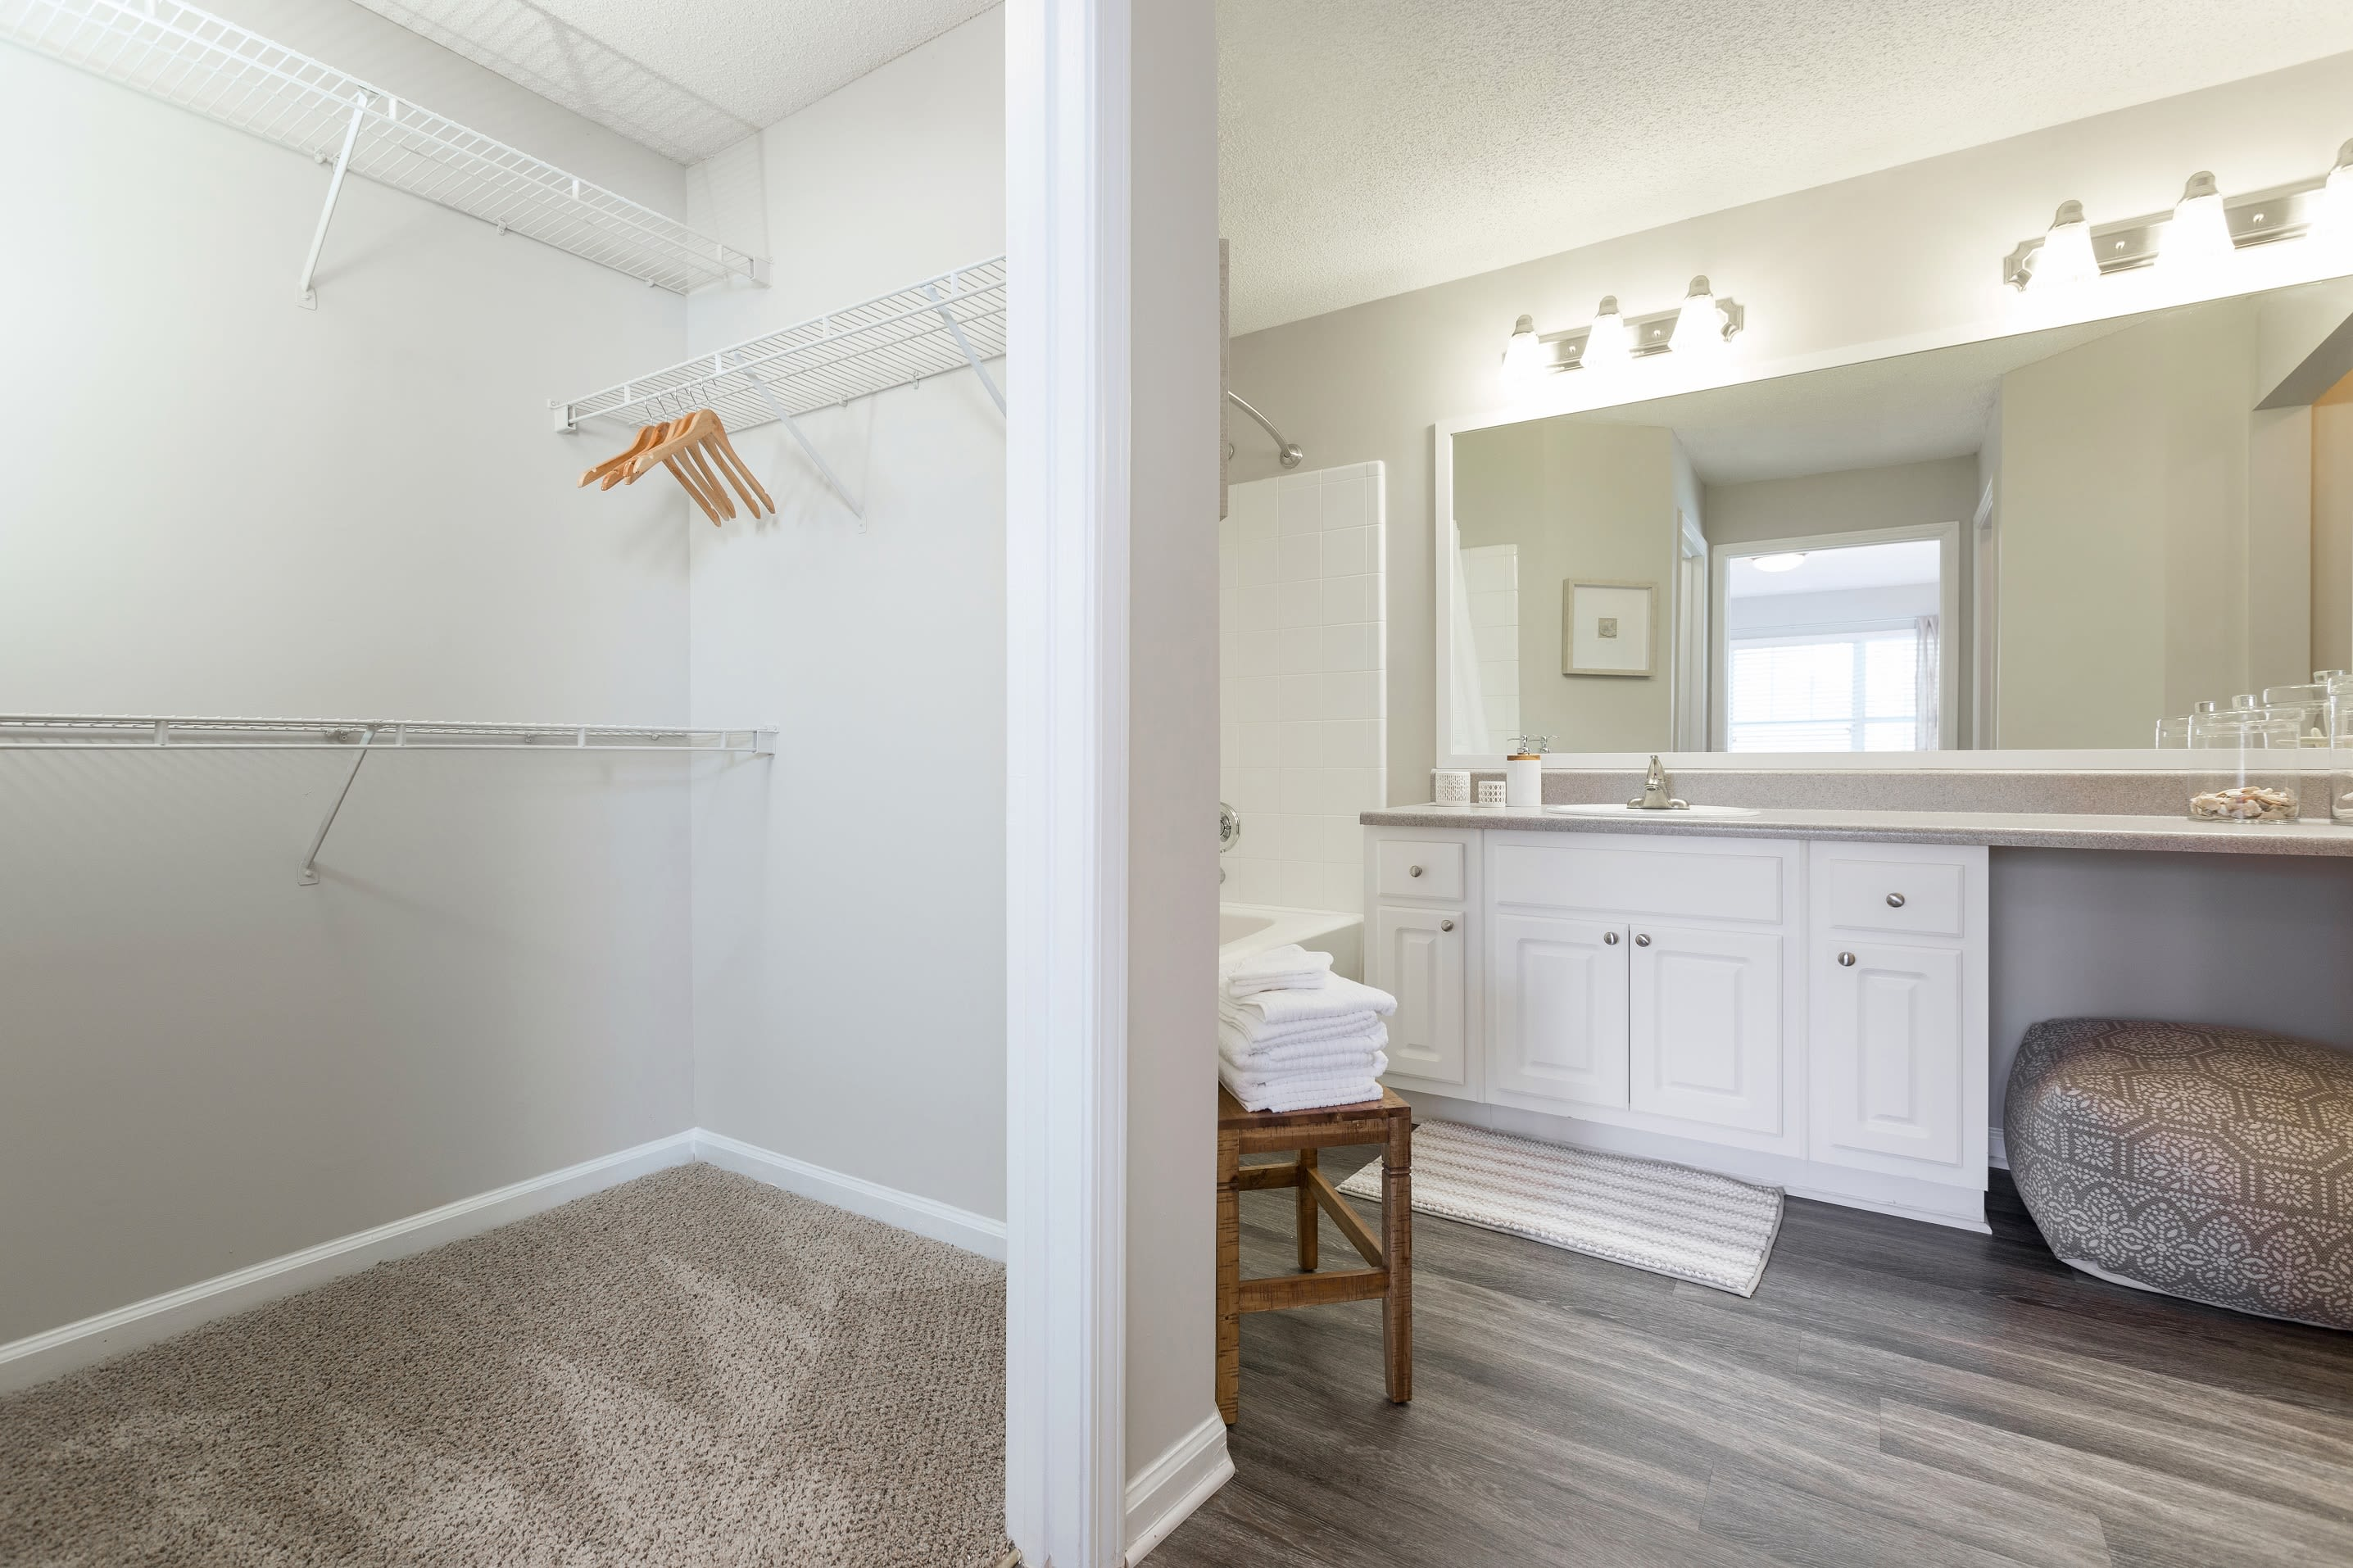 Bathroom with walk in closet at Belle Vista Apartment Homes in Lithonia, GA.